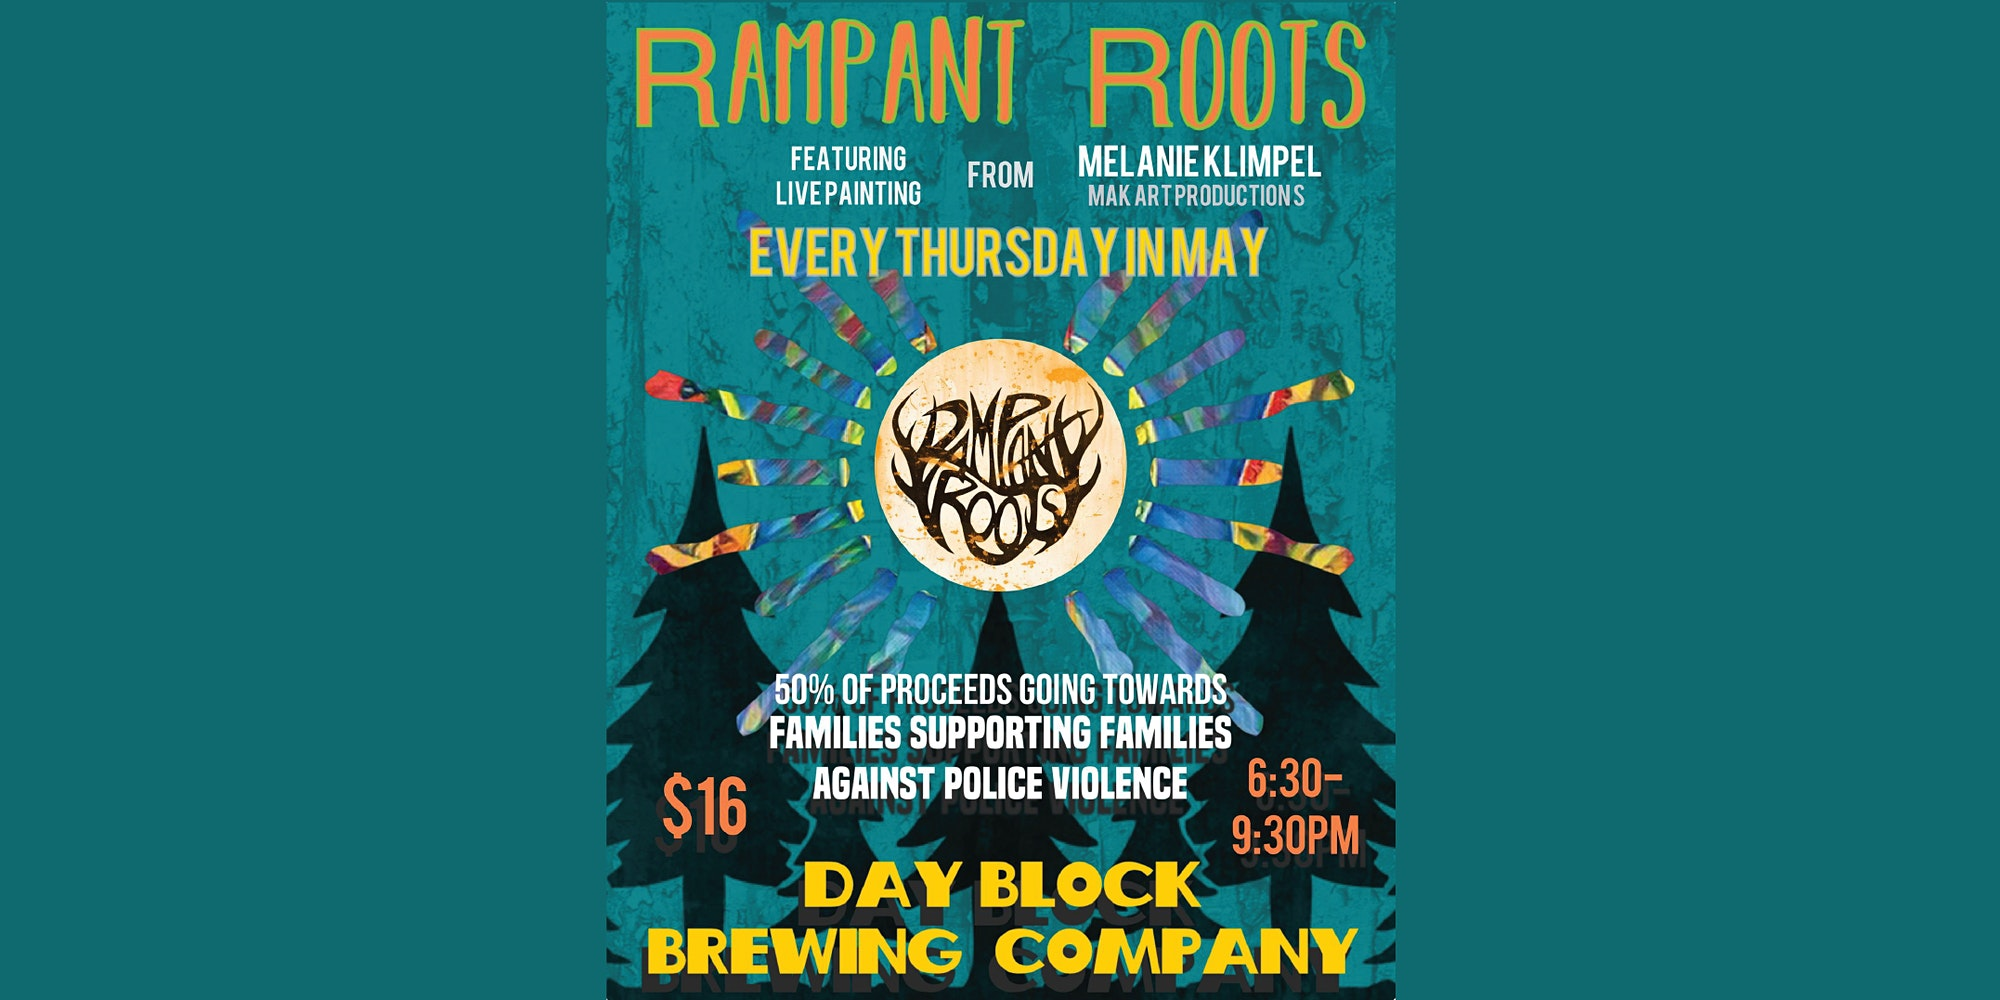 Rampant Roots May 20th (Thursday Gatherings)